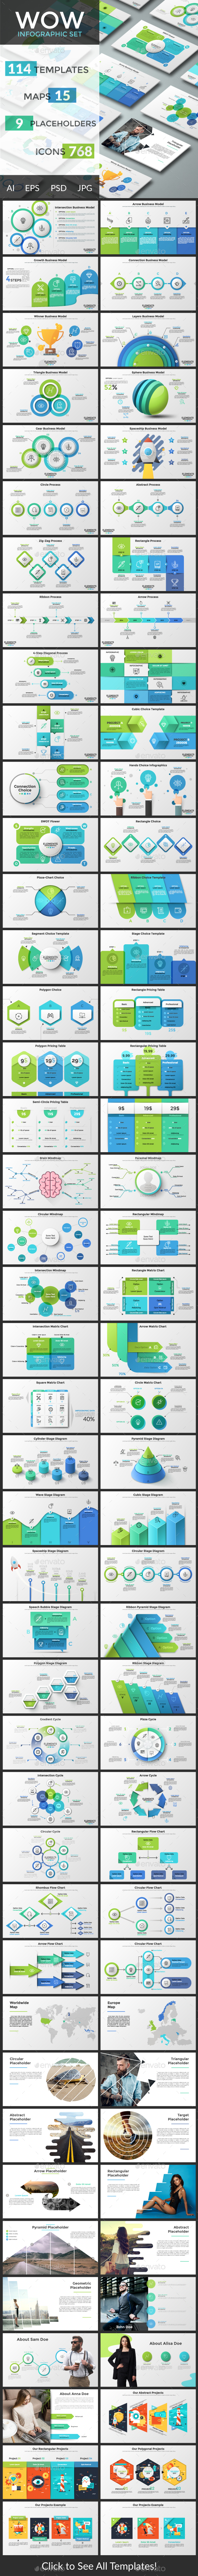 Wow Infographic Collection - Infographics